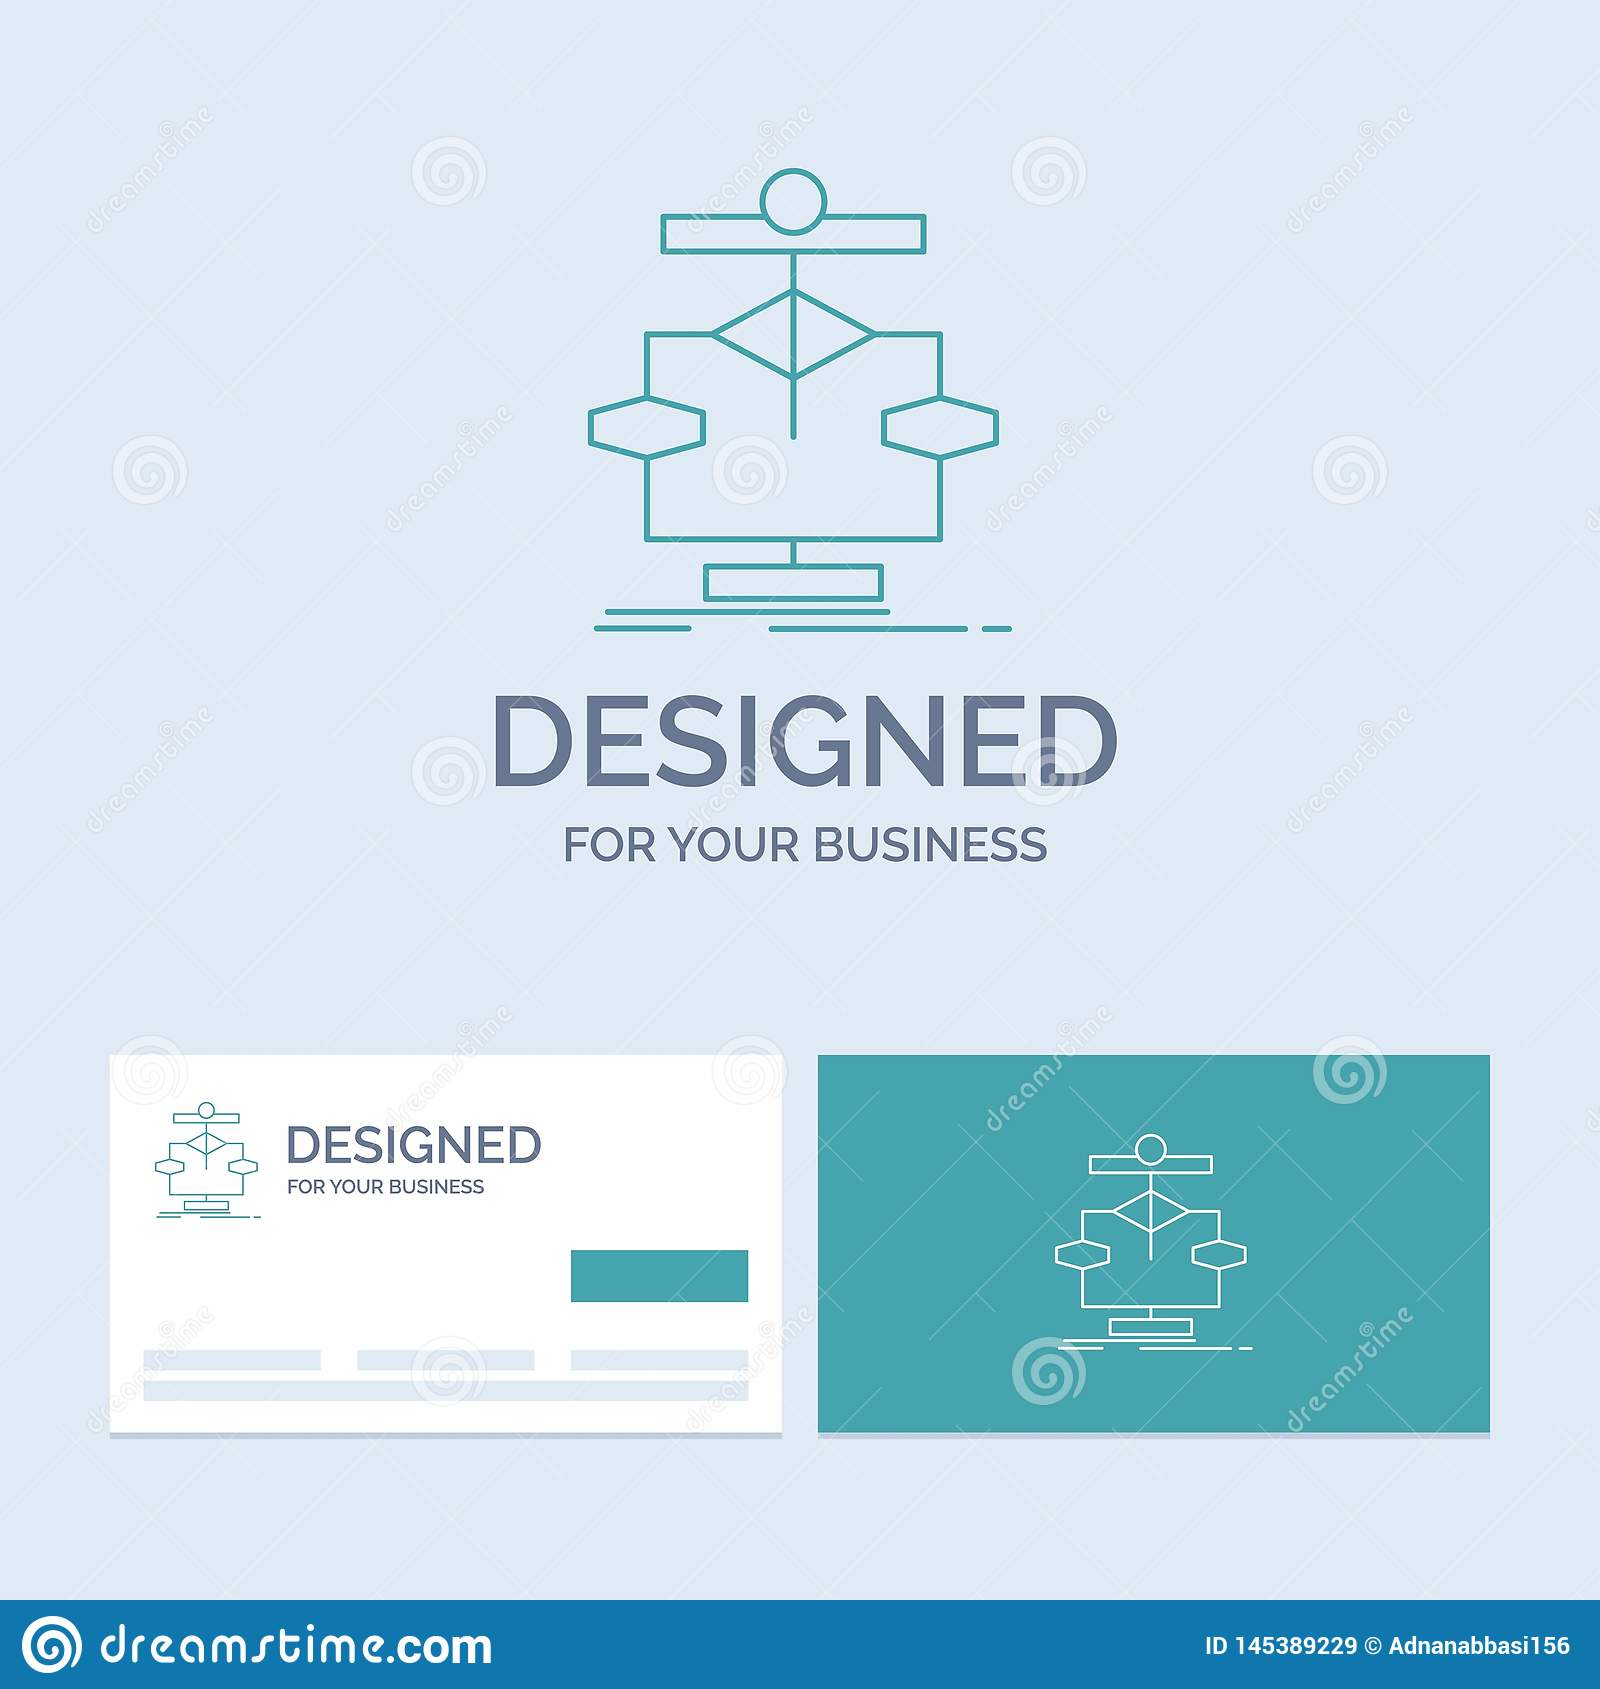 Algorithm, chart, data, diagram, flow Business Logo Line Icon Symbol for your business. Turquoise Business Cards with Brand logo